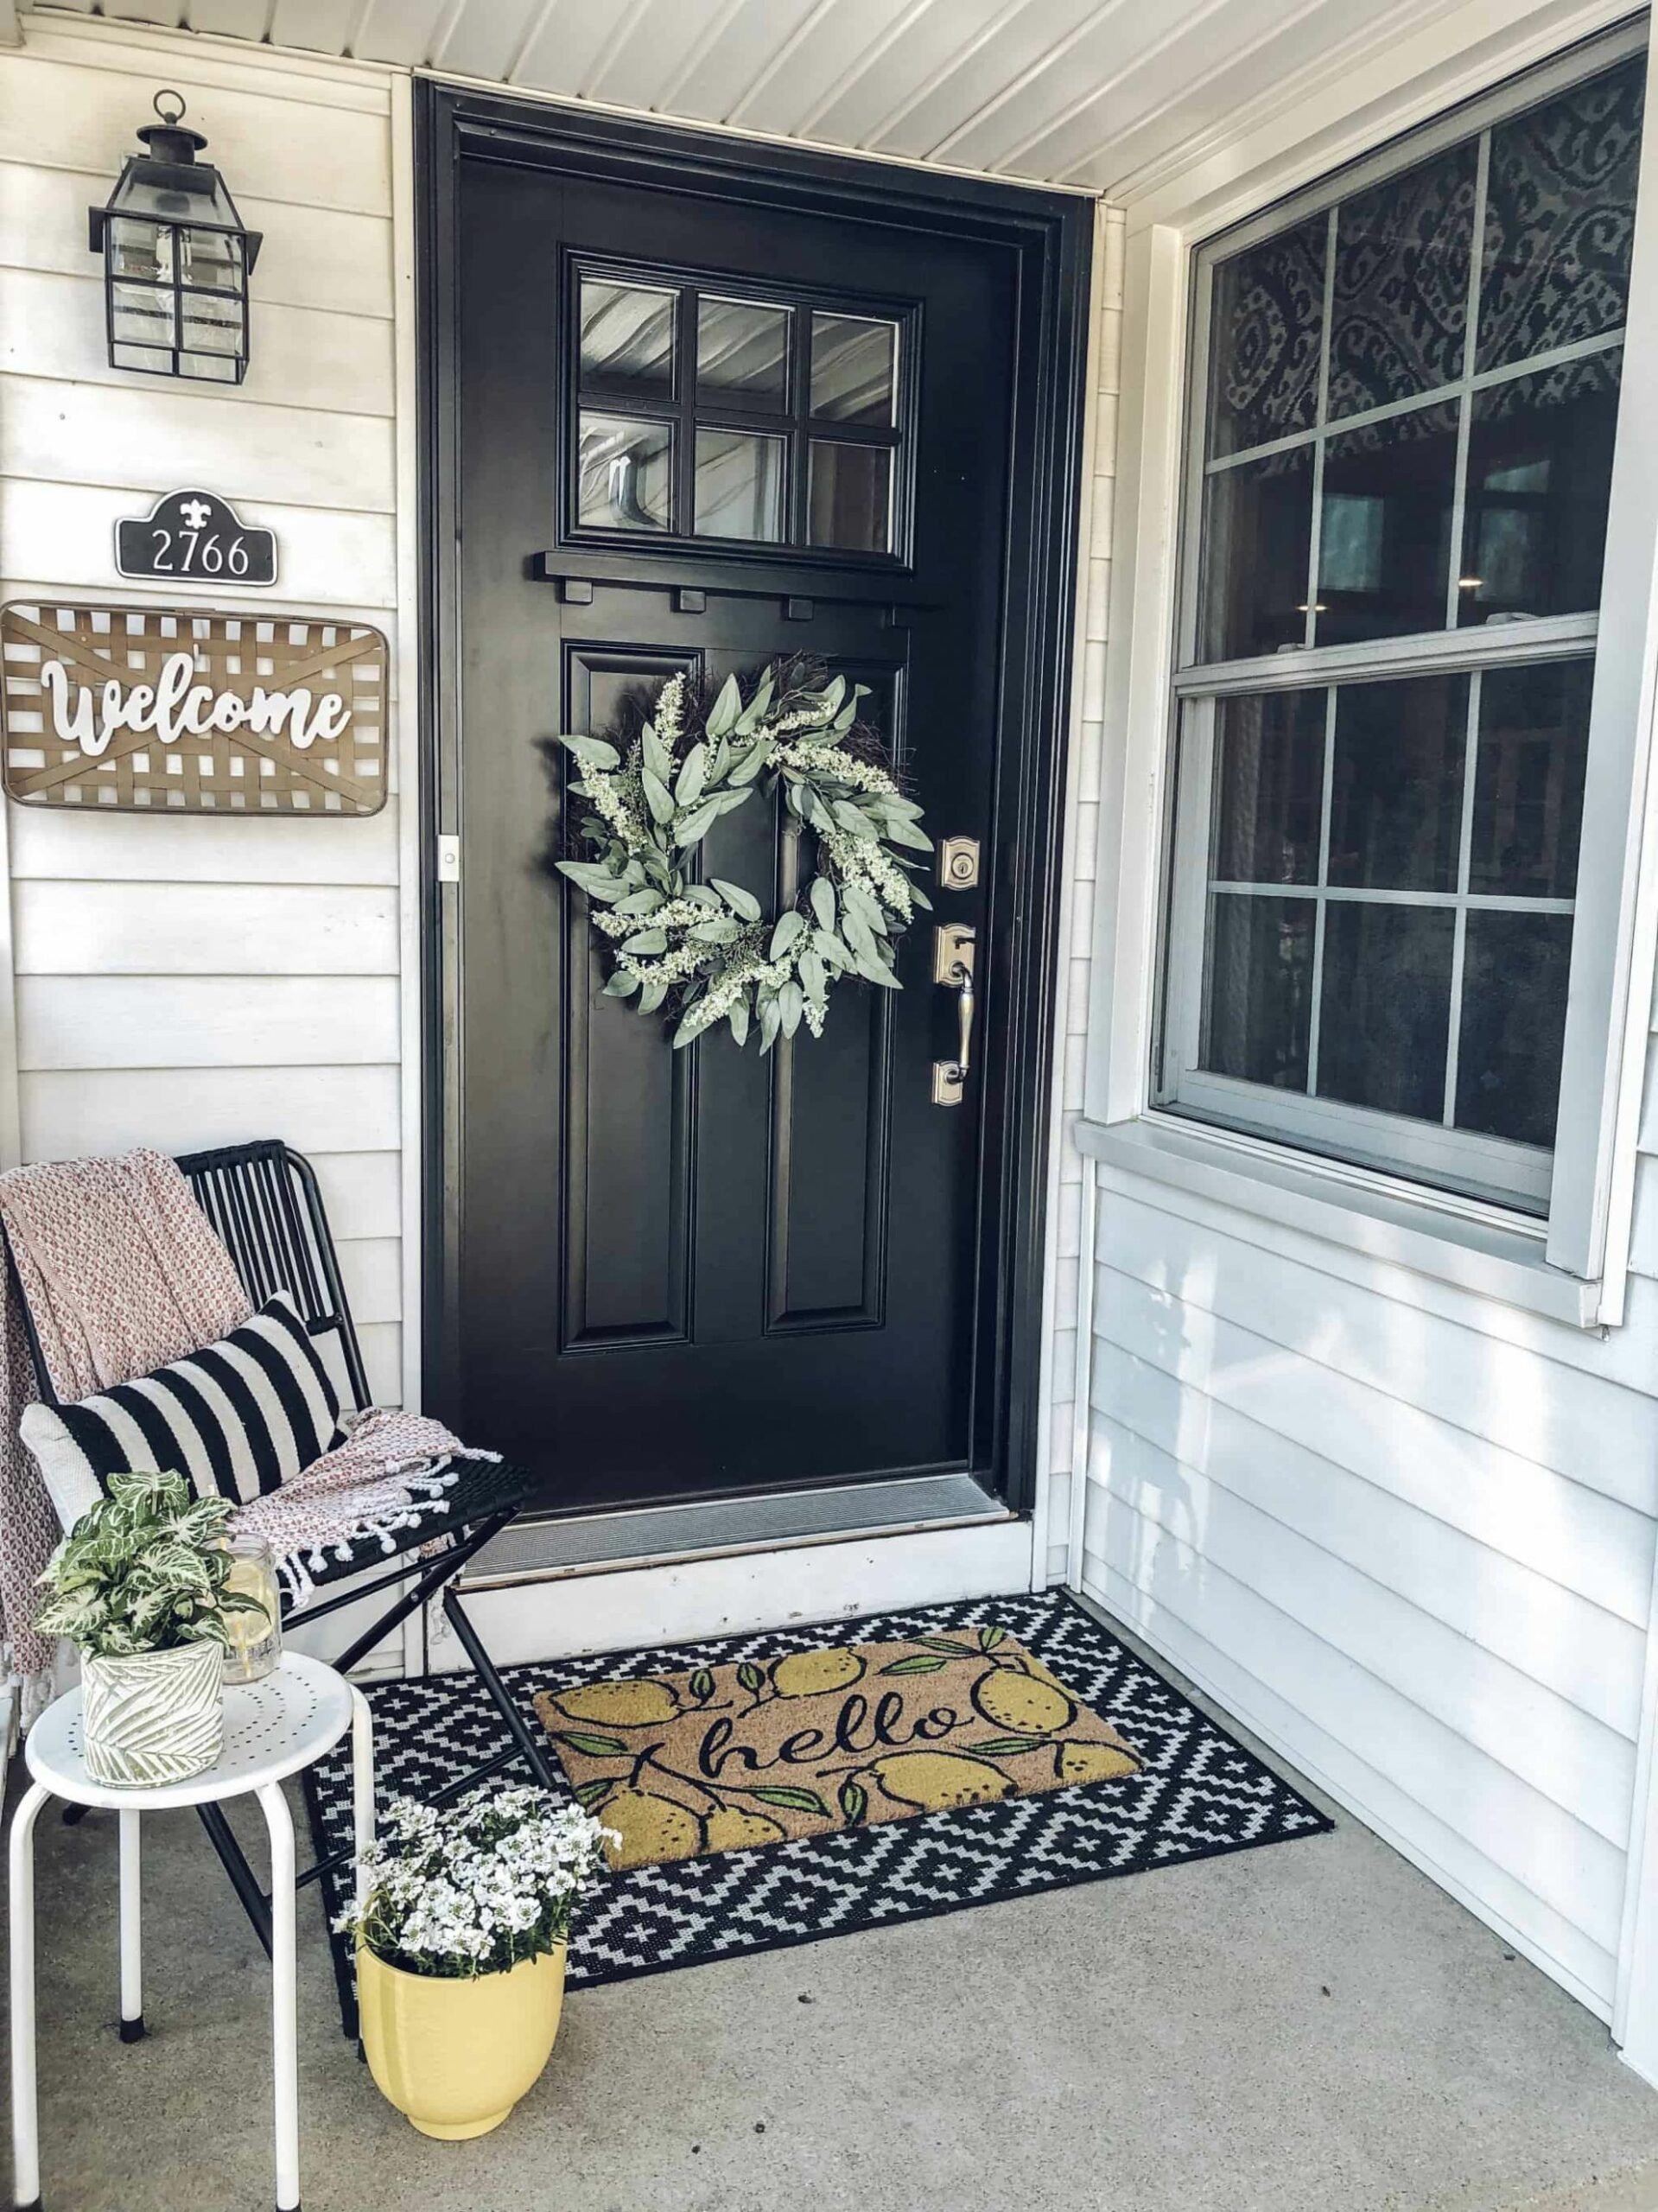 Spring Small Front Porch Decor: 10 Budget Friendly Decorating Ideas ..